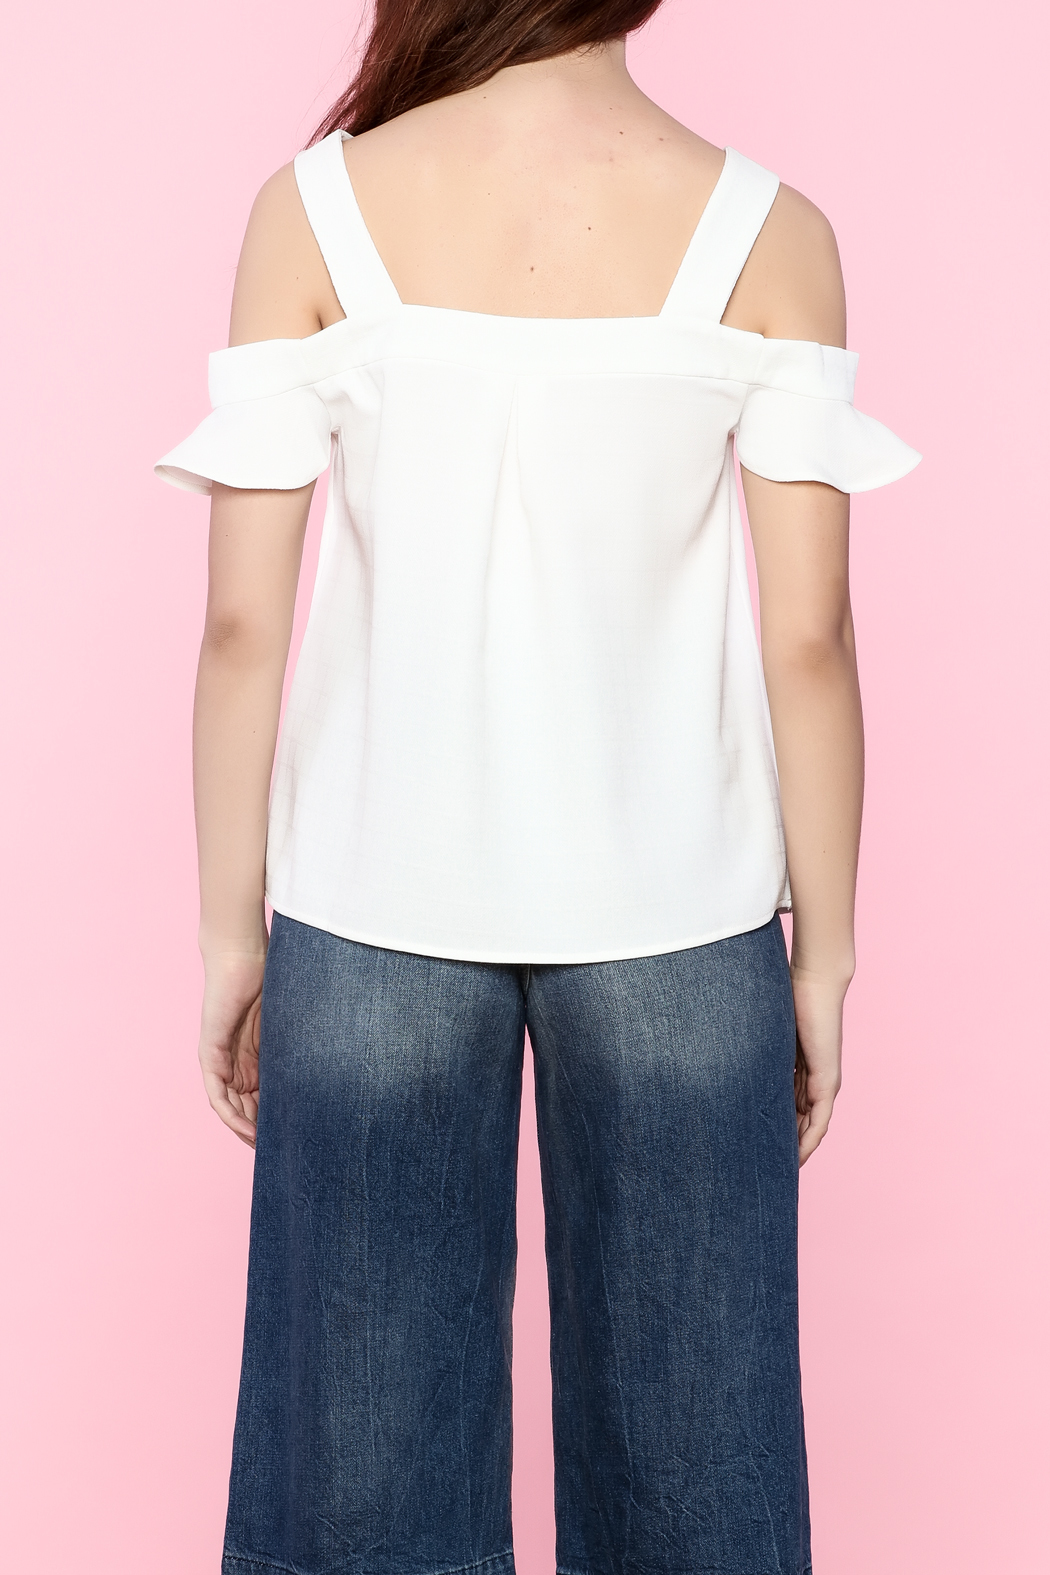 Very J Ruffle Sleeve Cold Shoulder Blouse - Back Cropped Image